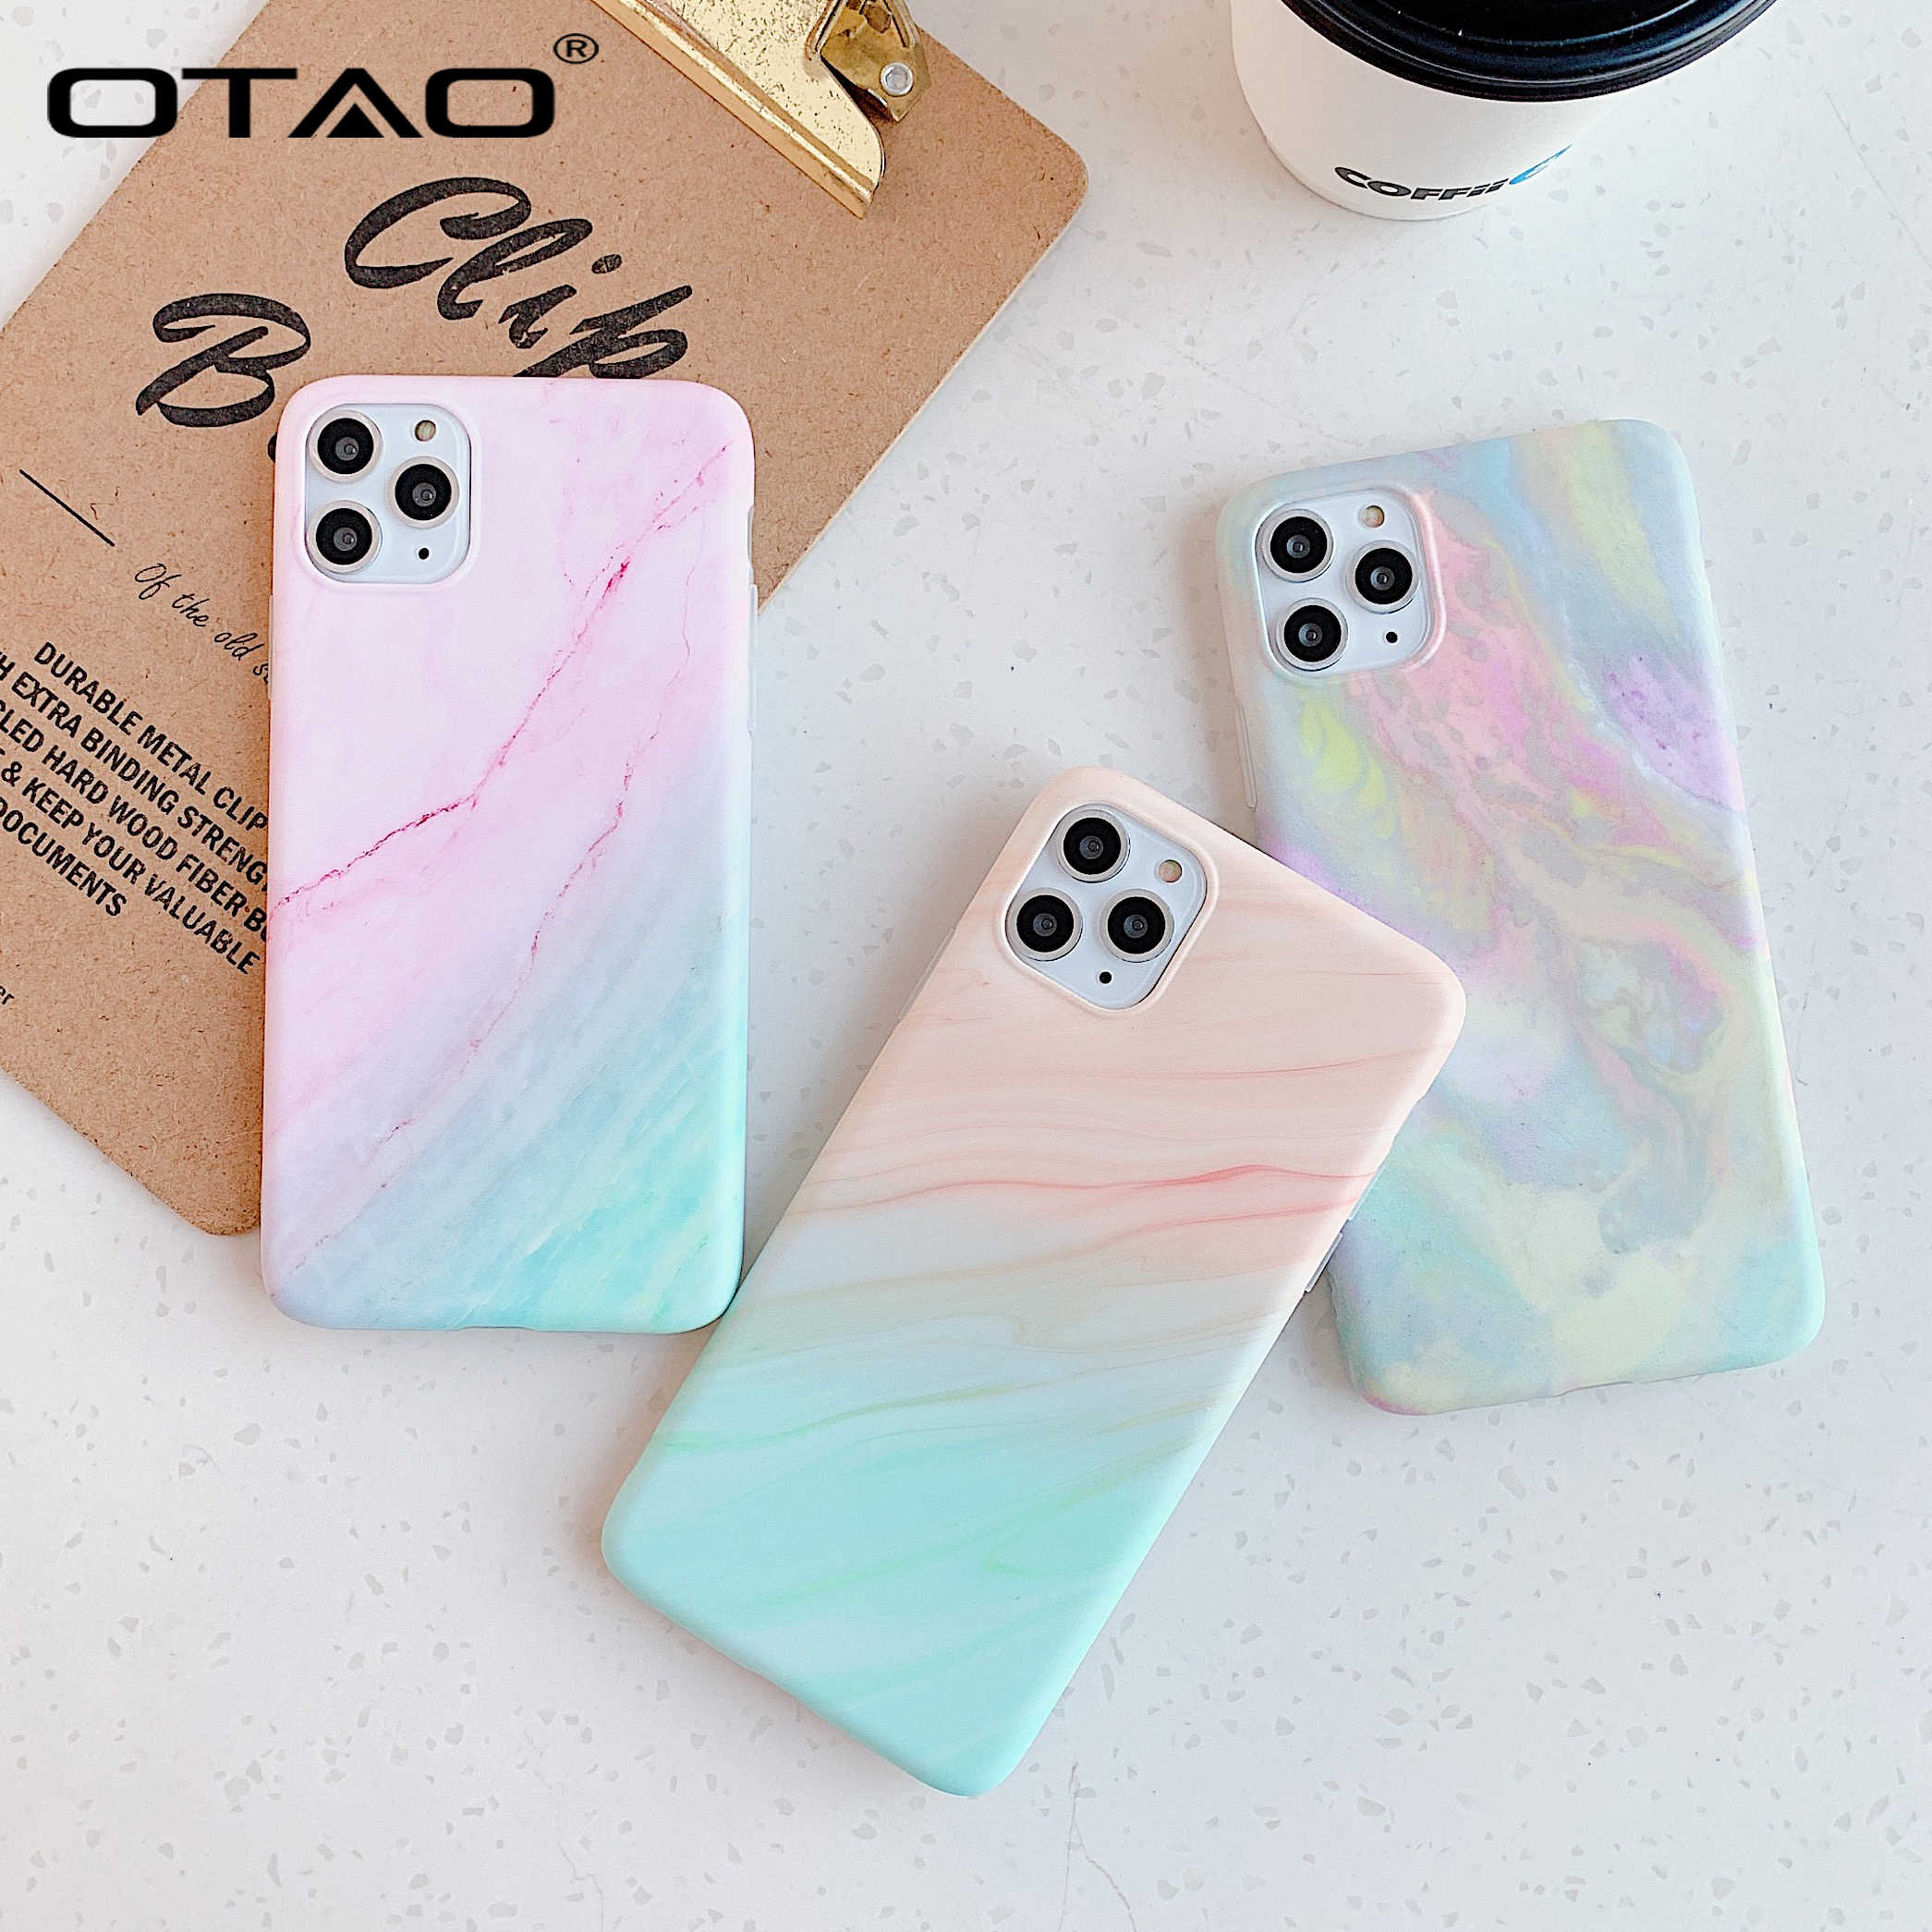 OTAO Gradiënt Case Voor iPhone 11 Pro Max X XR XS MAX Cool Marmer Case Voor iPhone 7 8 6 6S Plus IMD Rainbow Soft Silicone Cover